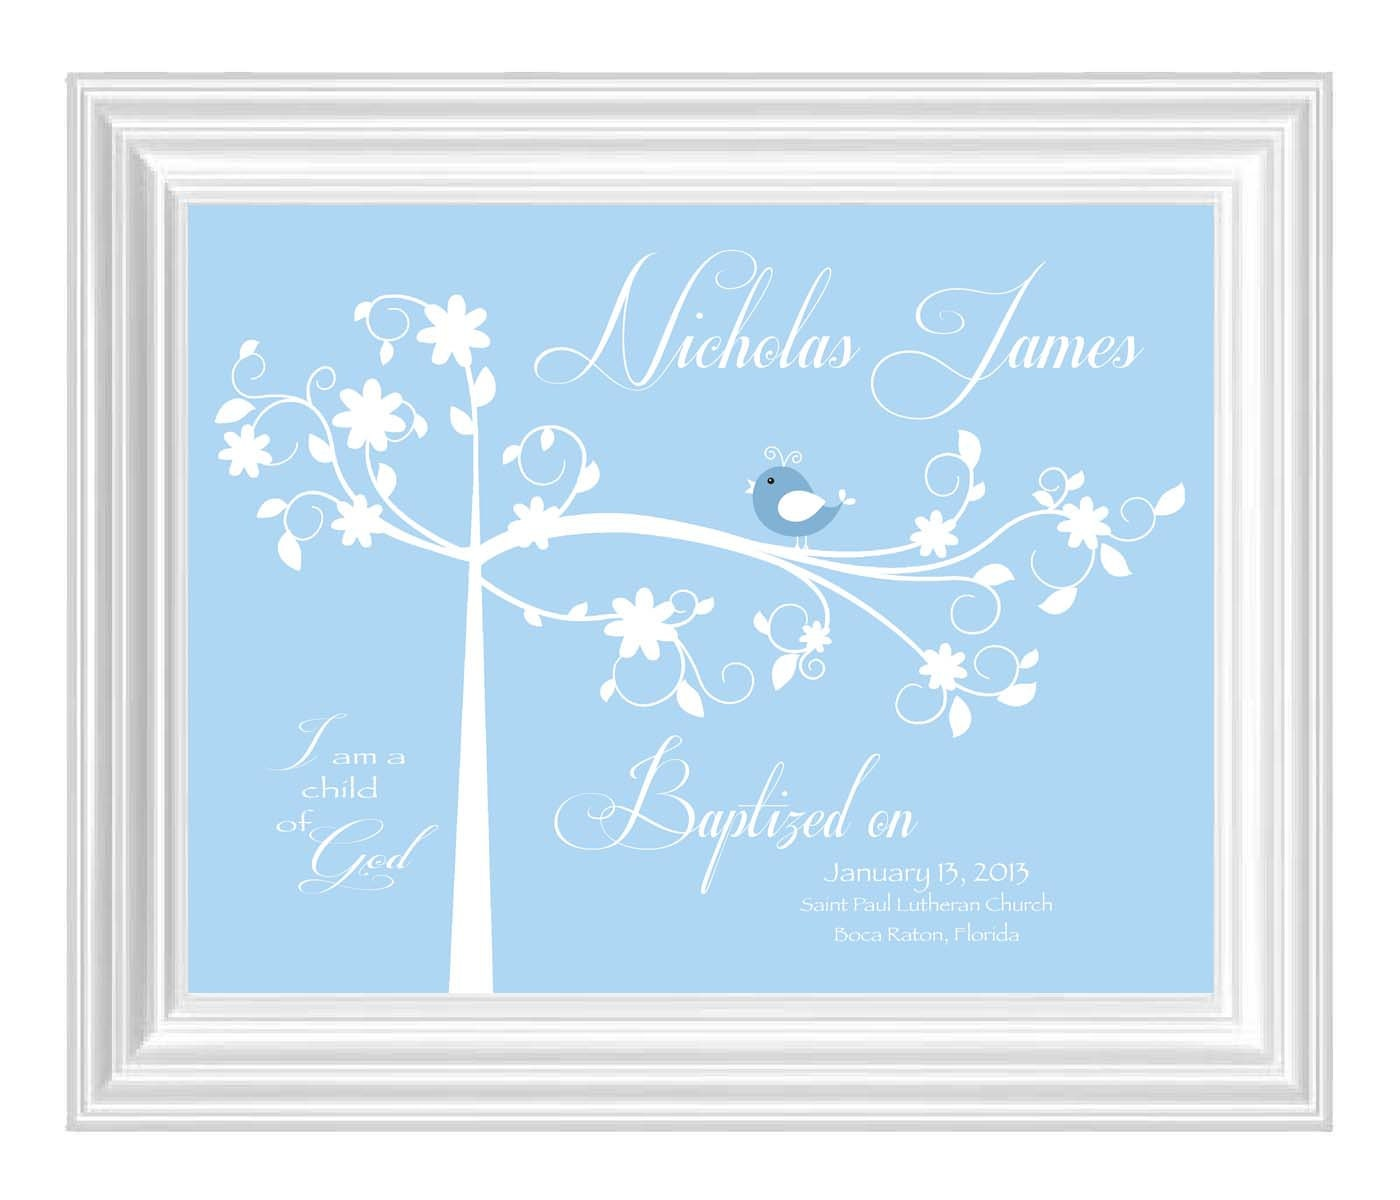 Gift Baby Boy Baptism : Baptism gift christening baby boy by kreationsbymarilyn